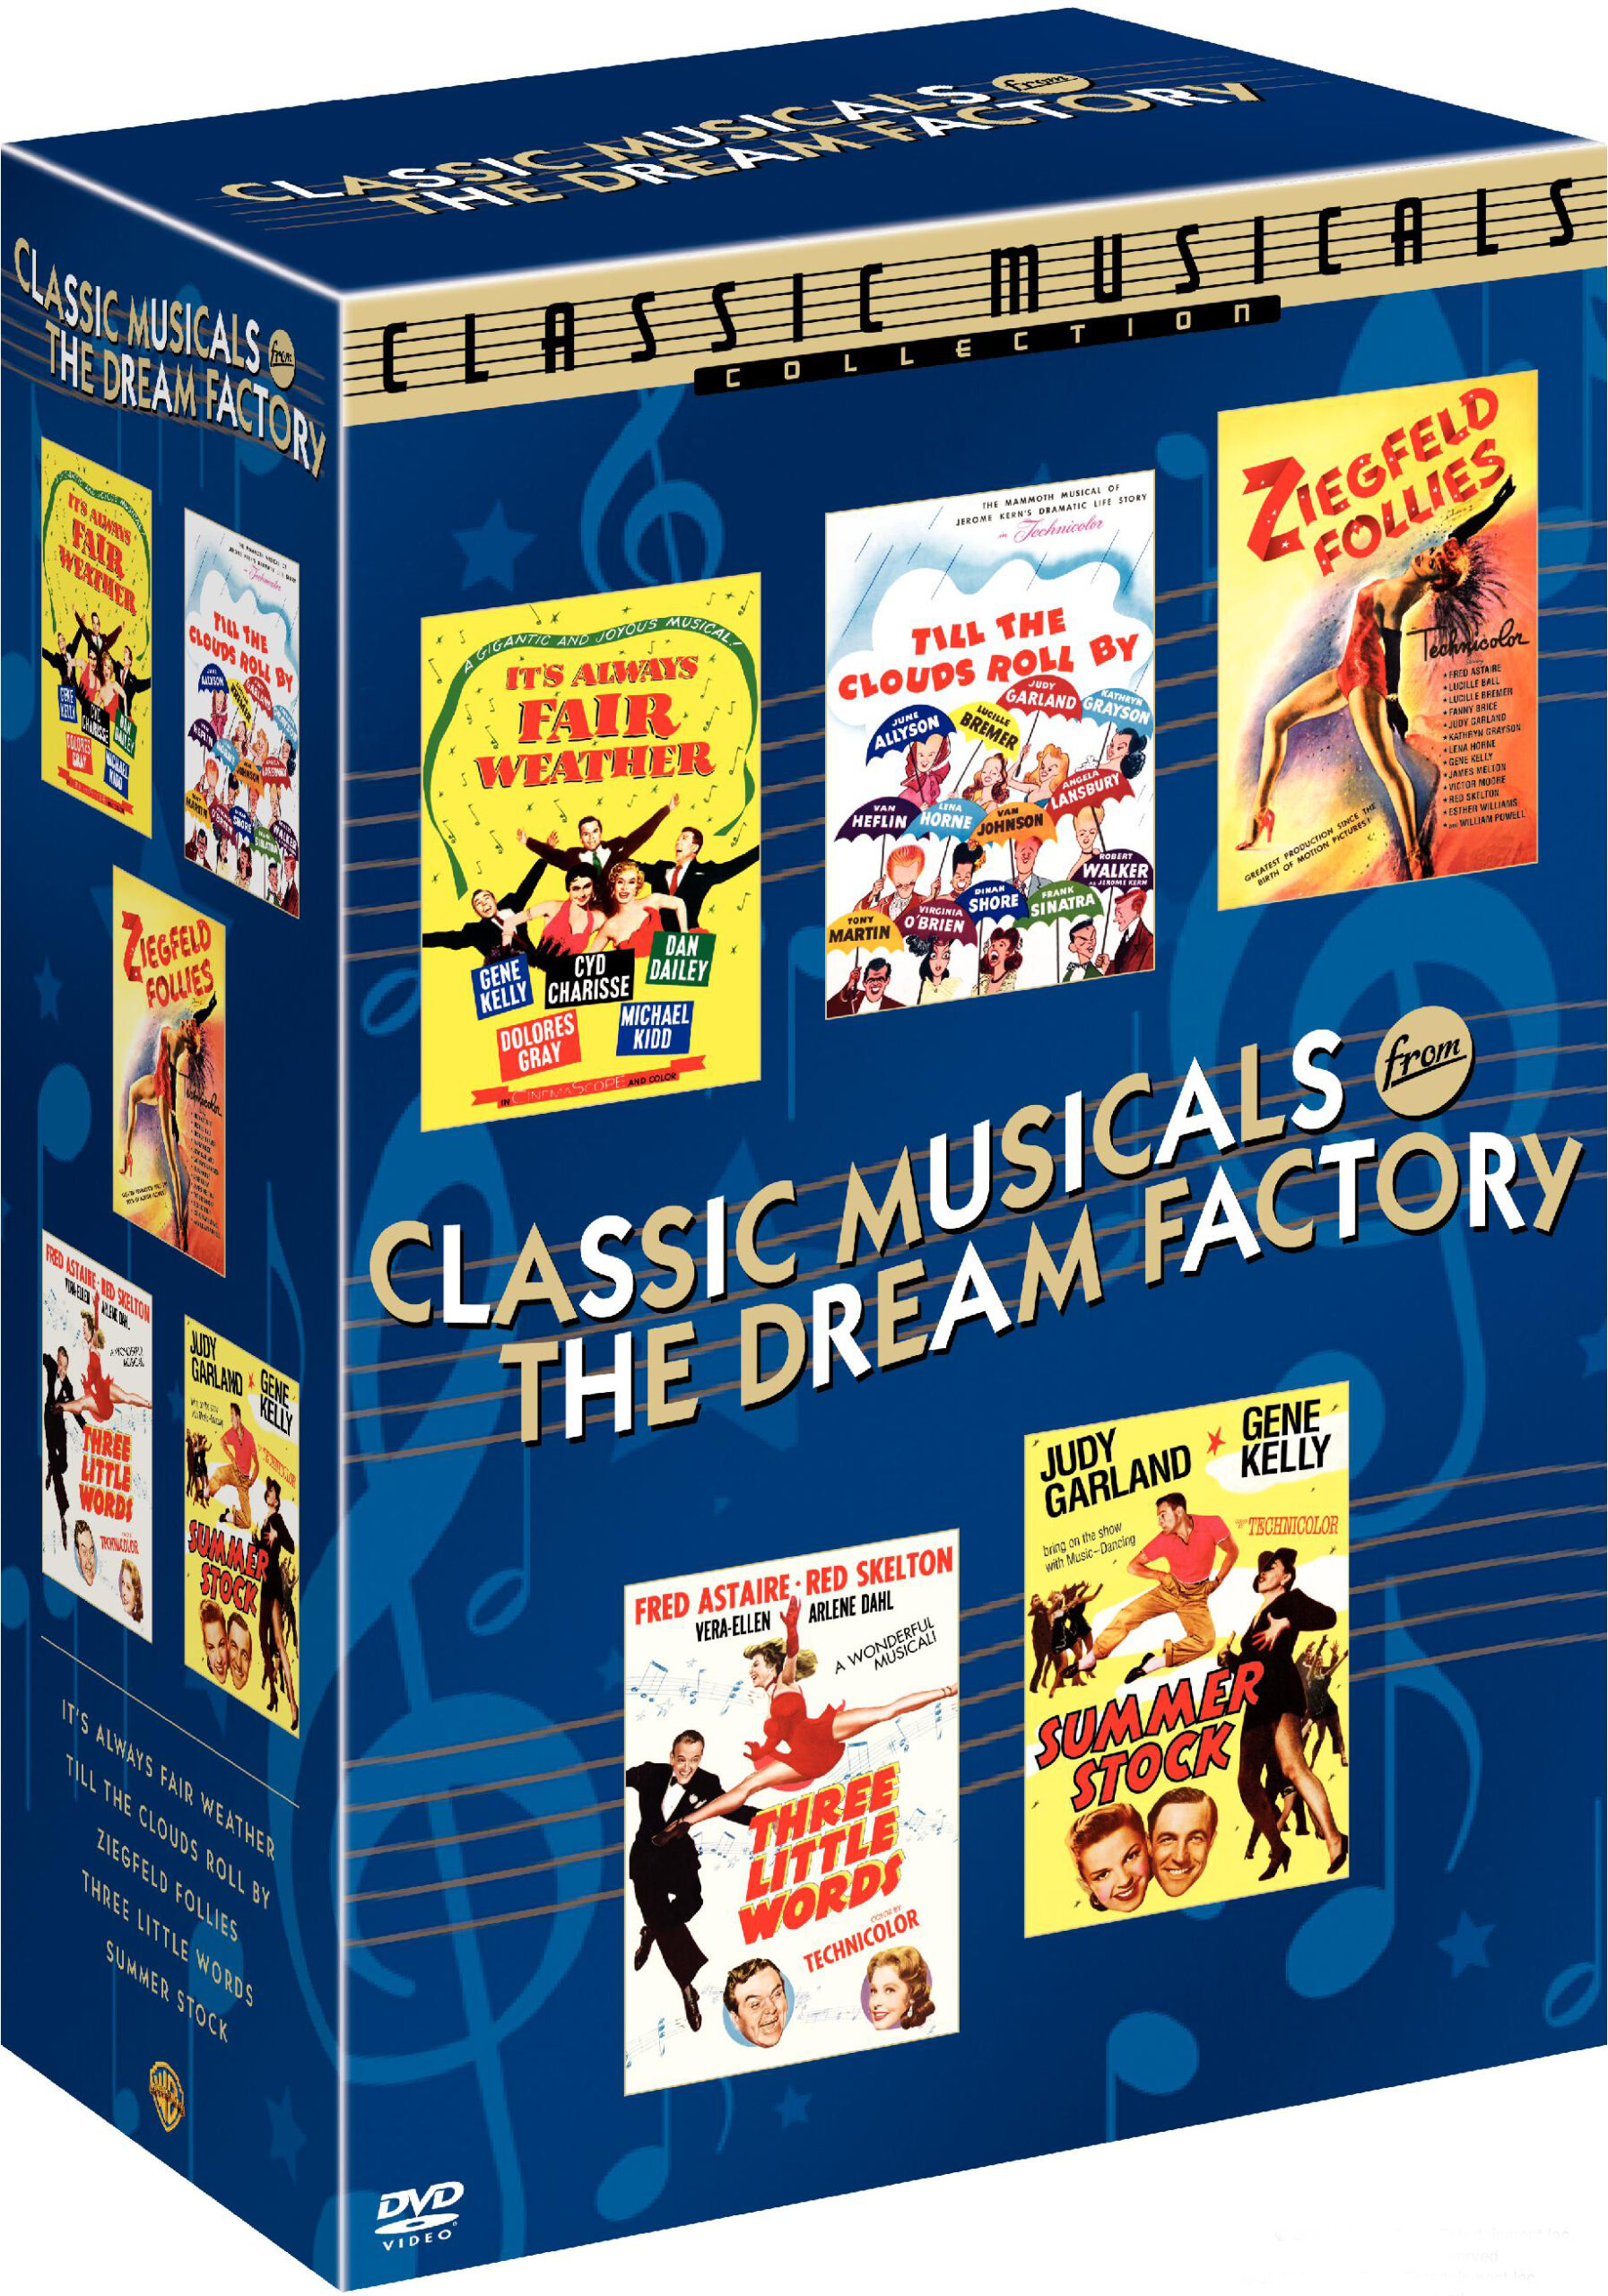 Classic Musicals from the Dream Factory DVD set